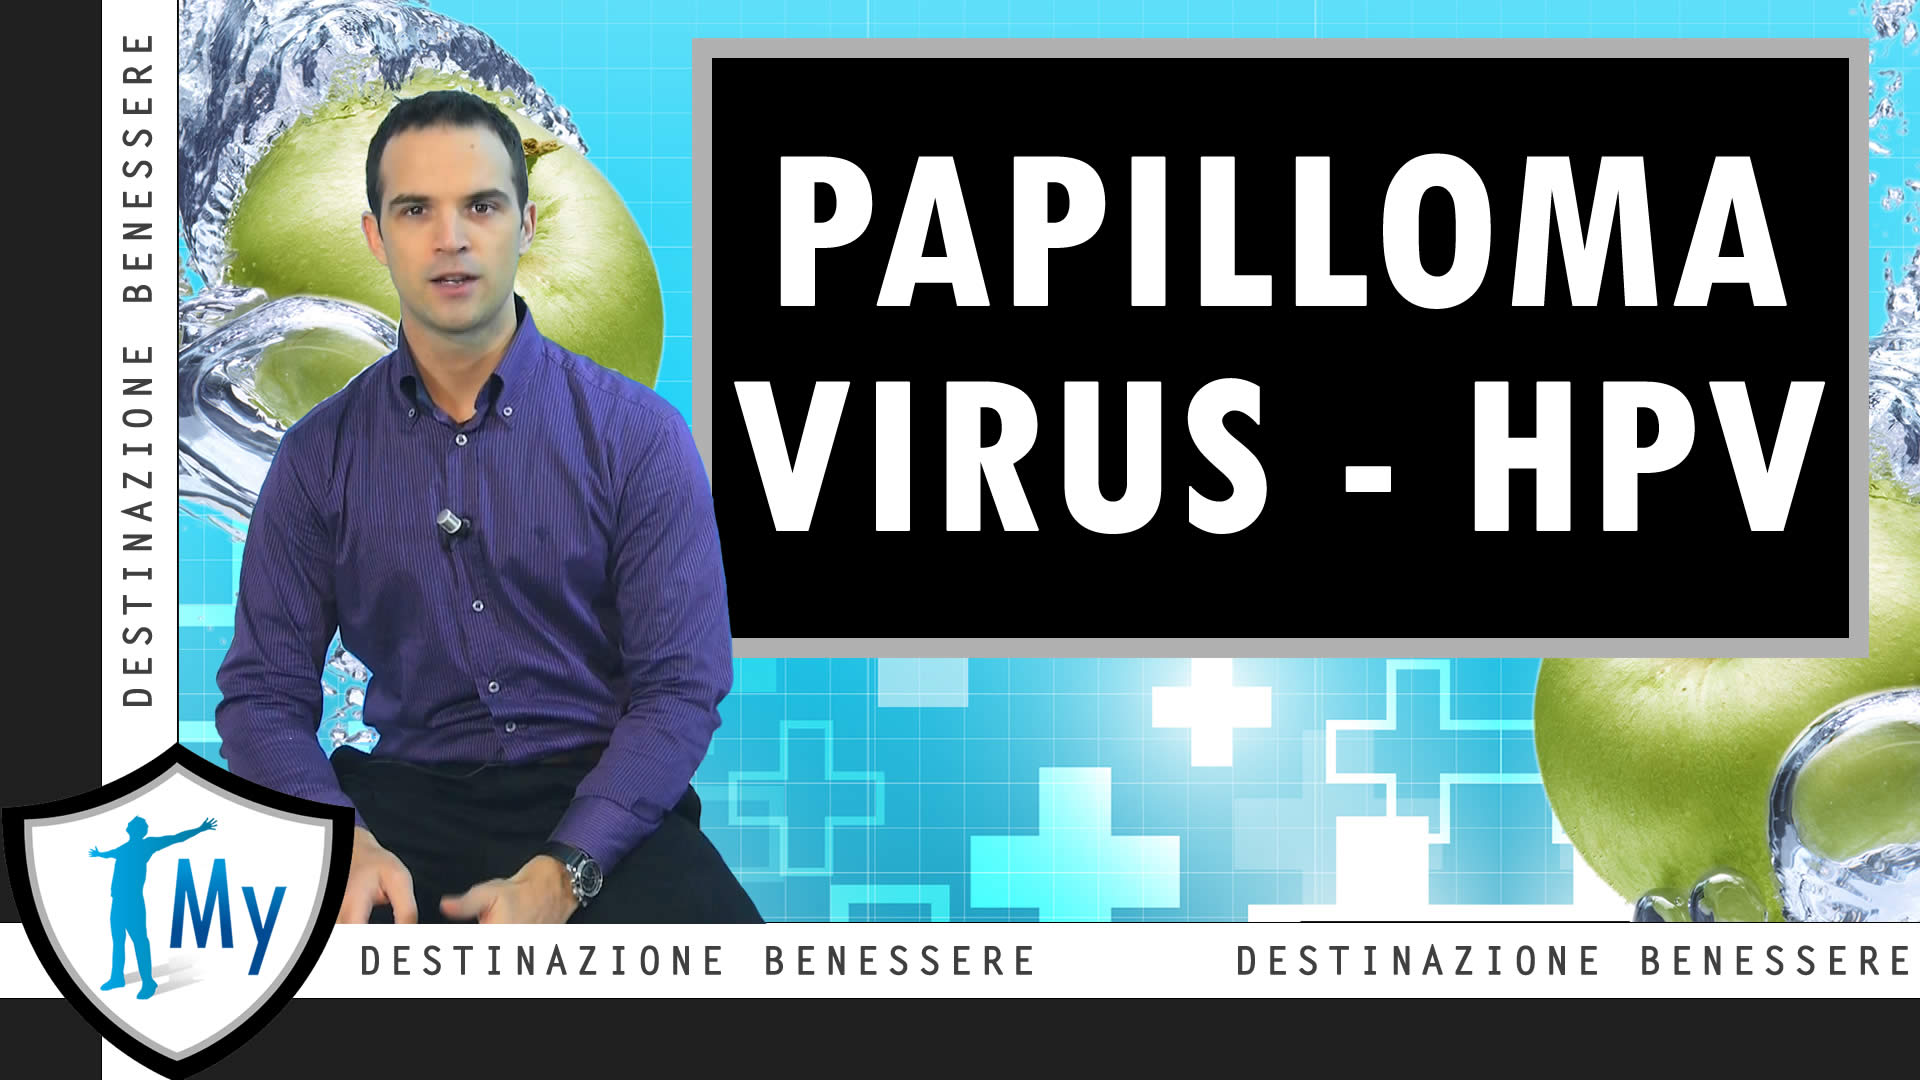 papilloma contagio bagno hpv high risk manner